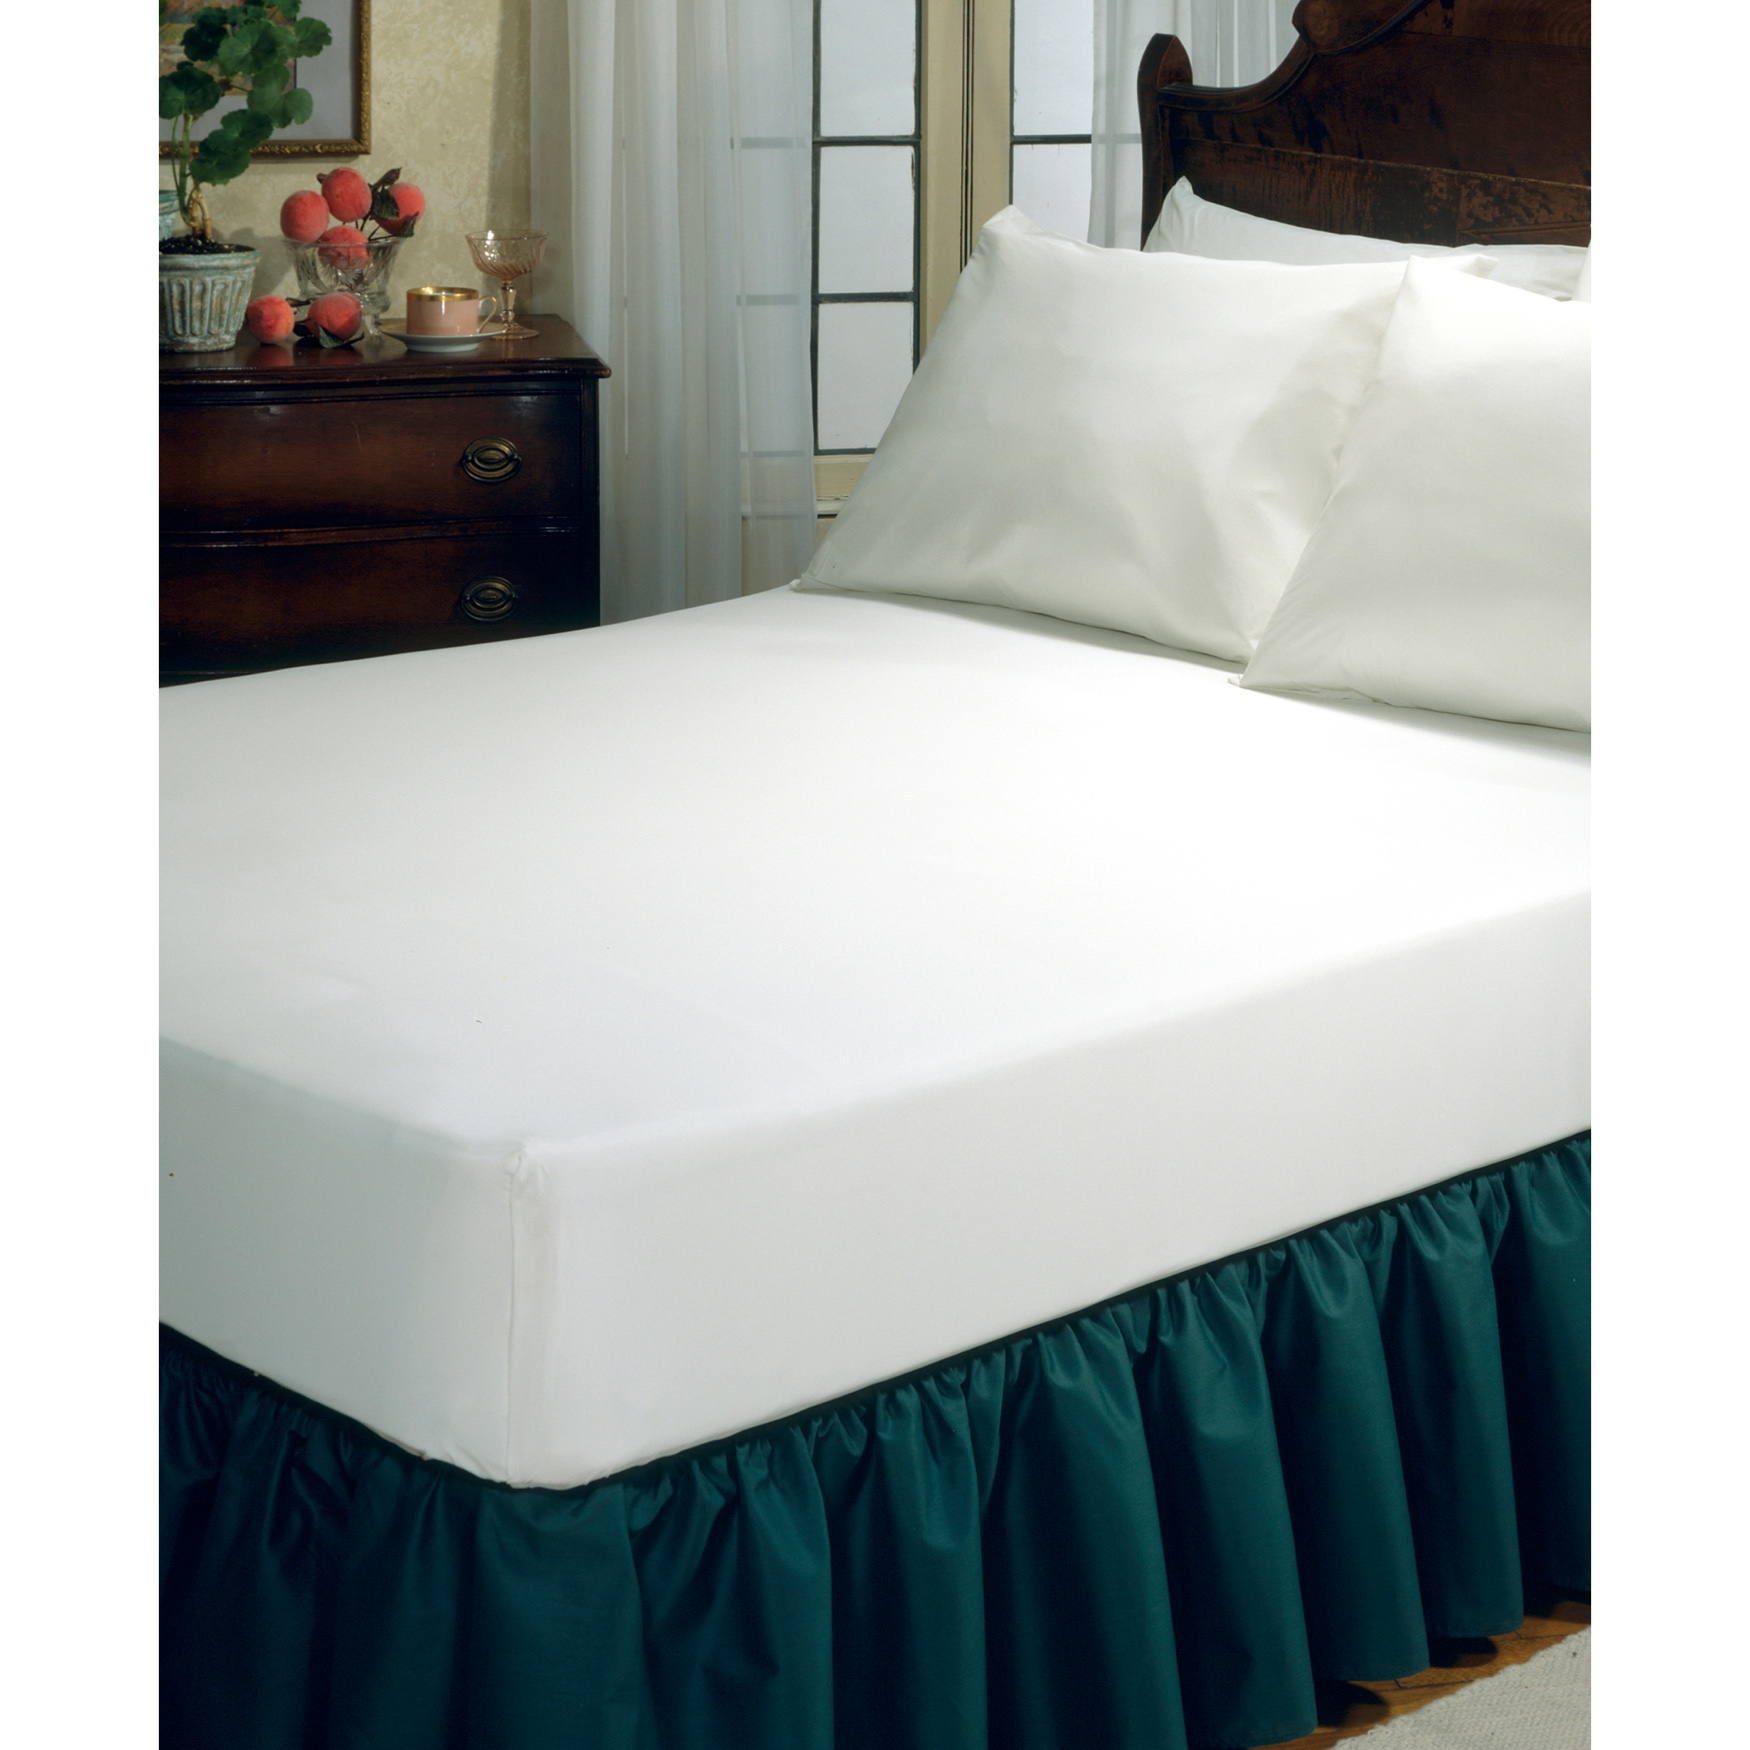 Fresh Ideas Fitted Vinyl Mattress Protector,